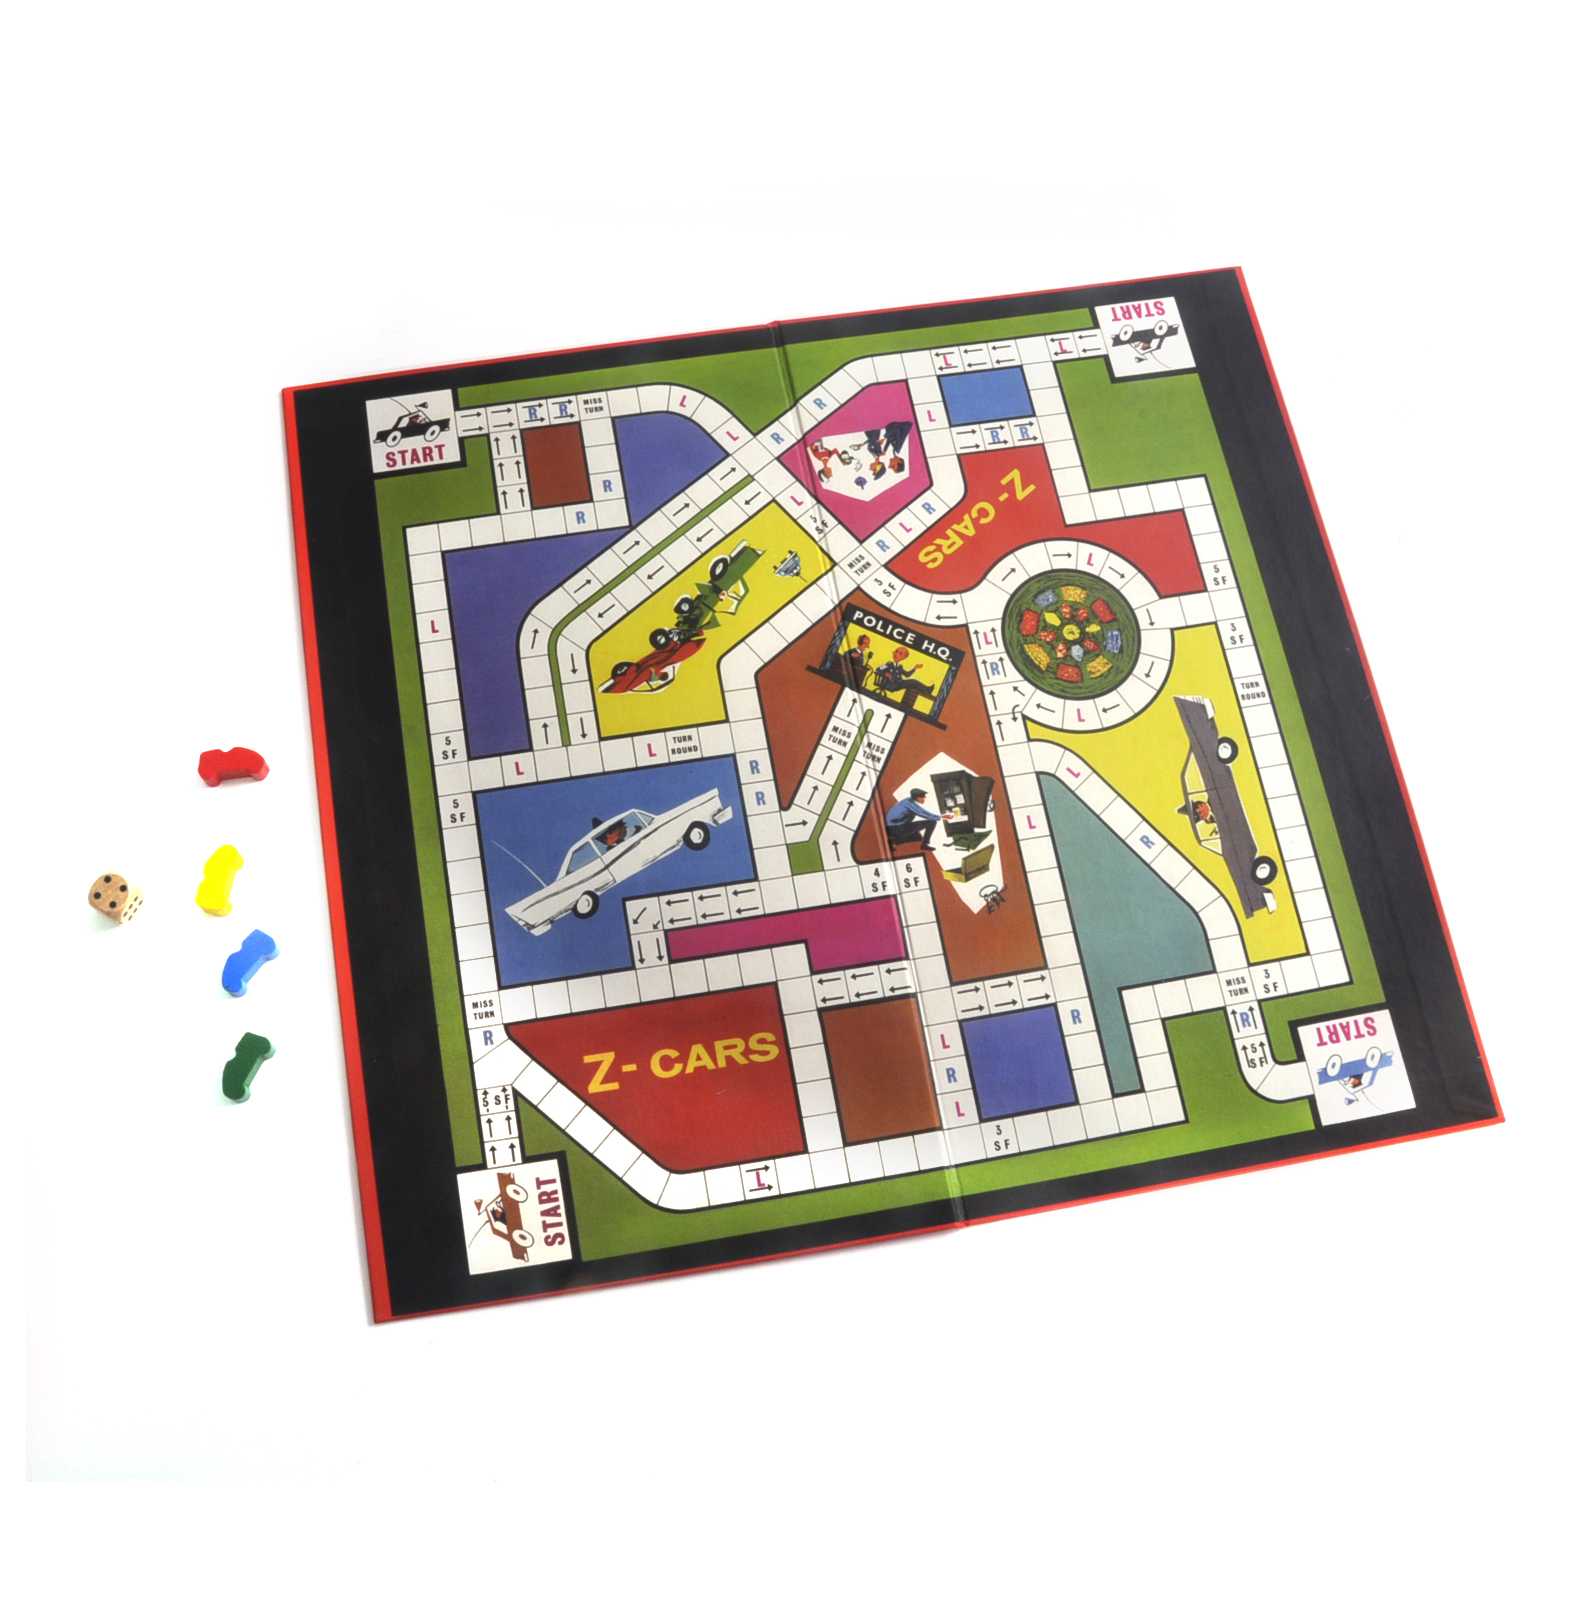 z cars the classic 1960s tv series retro board game. Black Bedroom Furniture Sets. Home Design Ideas